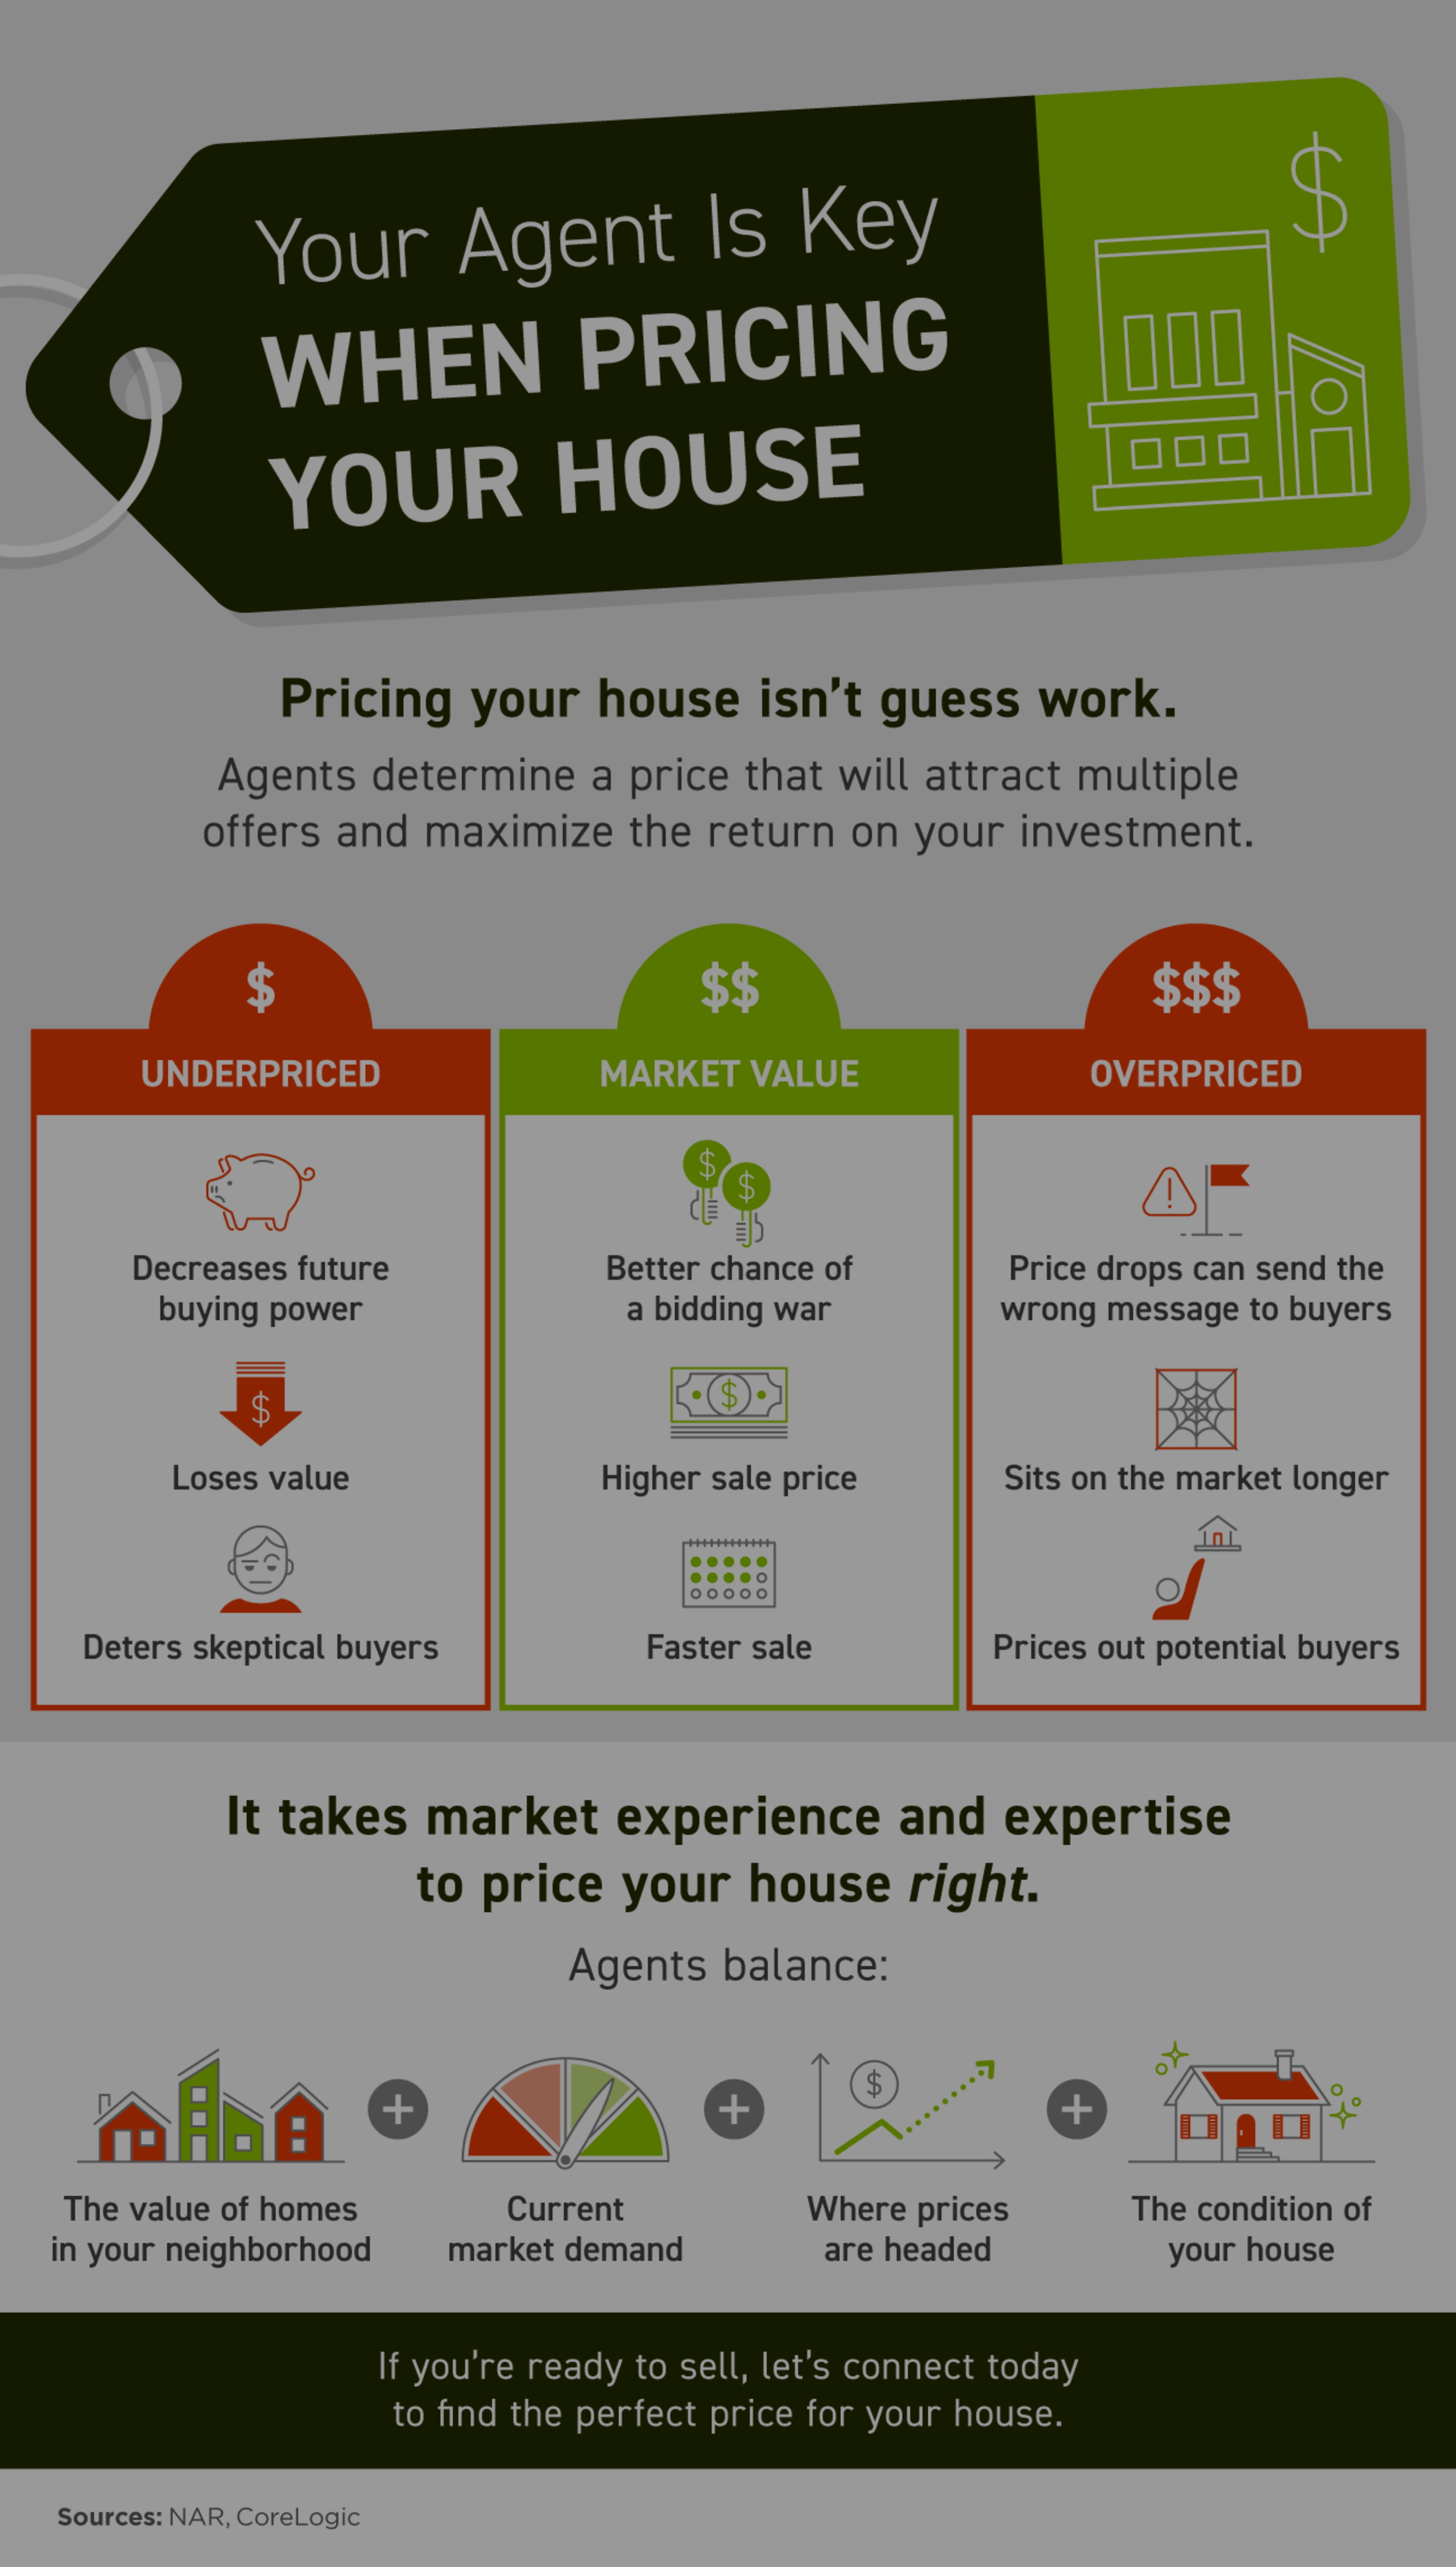 Your Agent Is Key When Pricing Your House